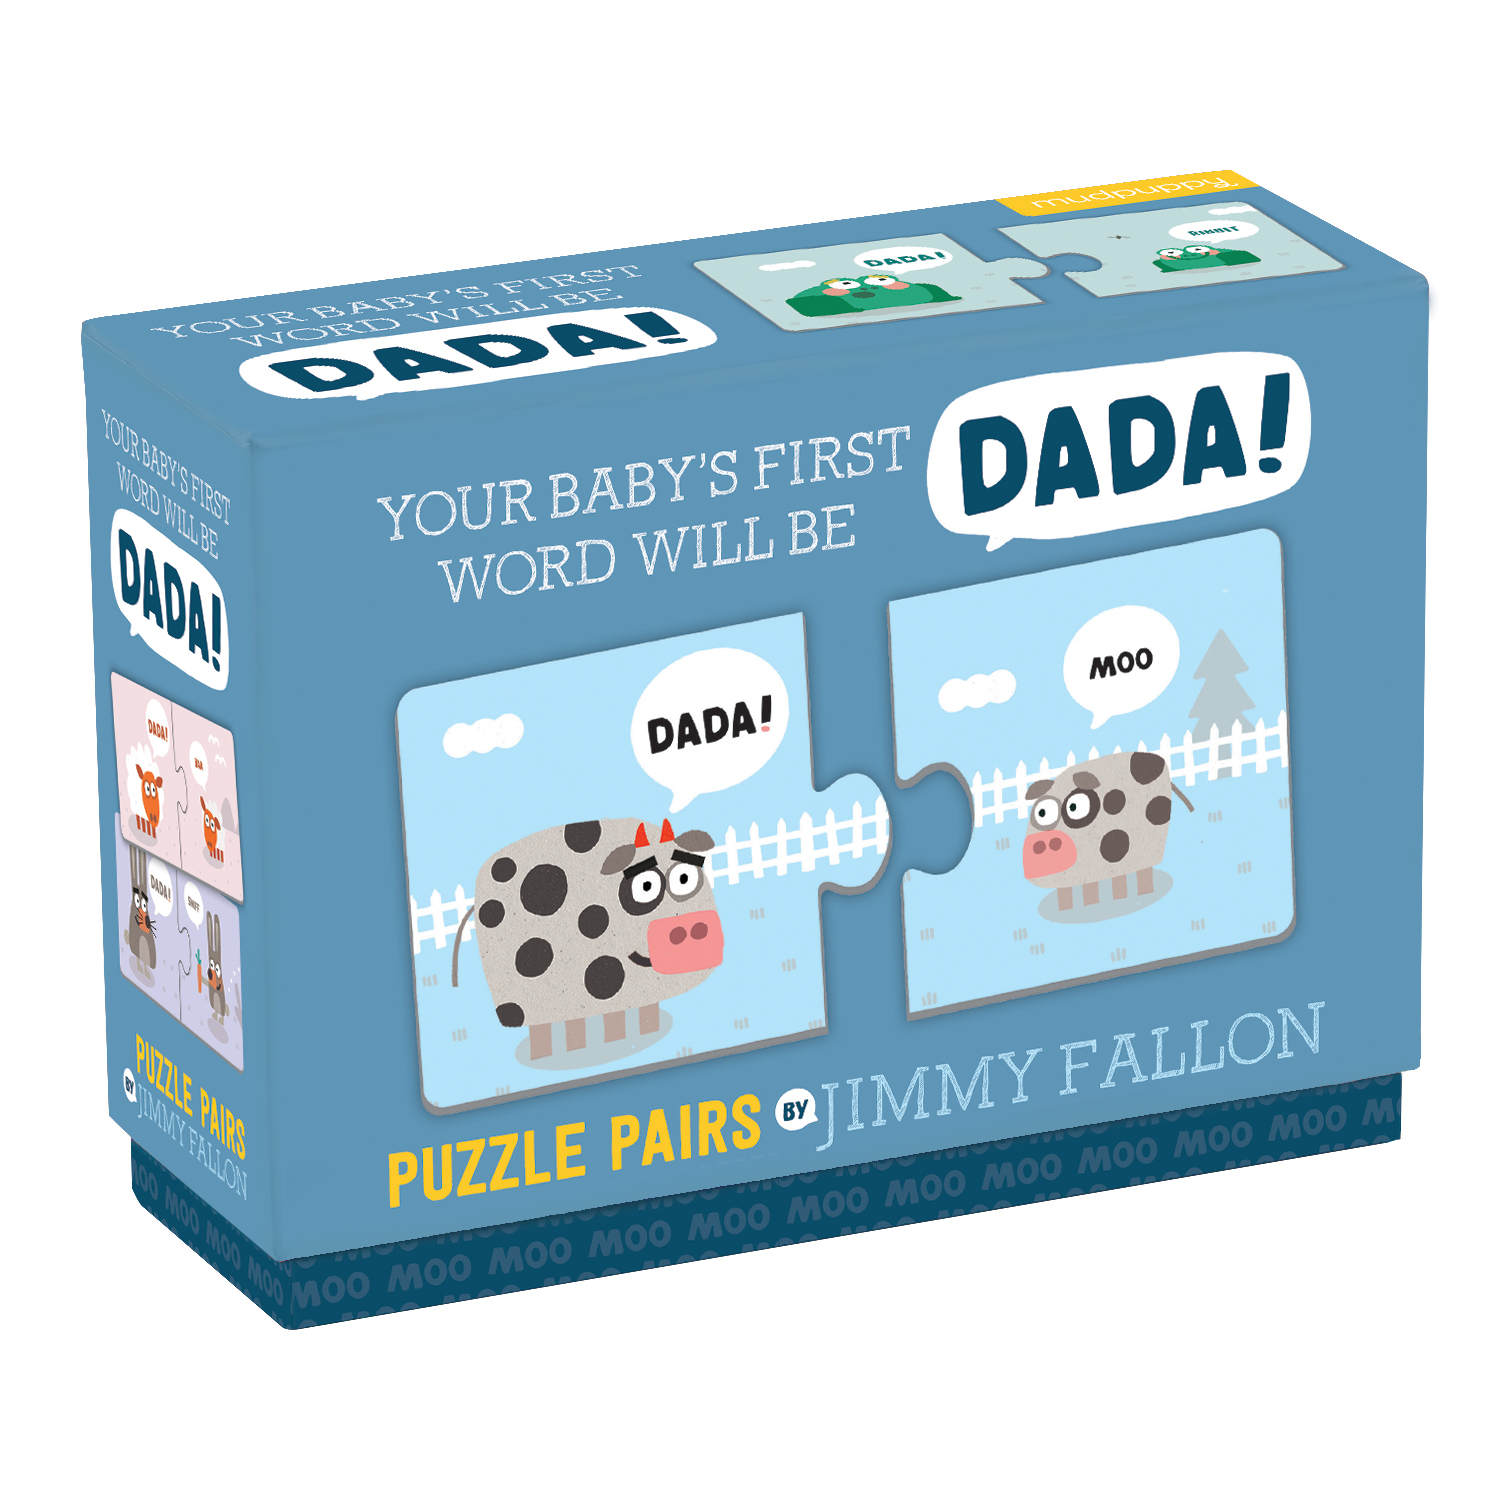 Jimmy Fallon Your Baby's First Word Will Be Dada PUZZLE